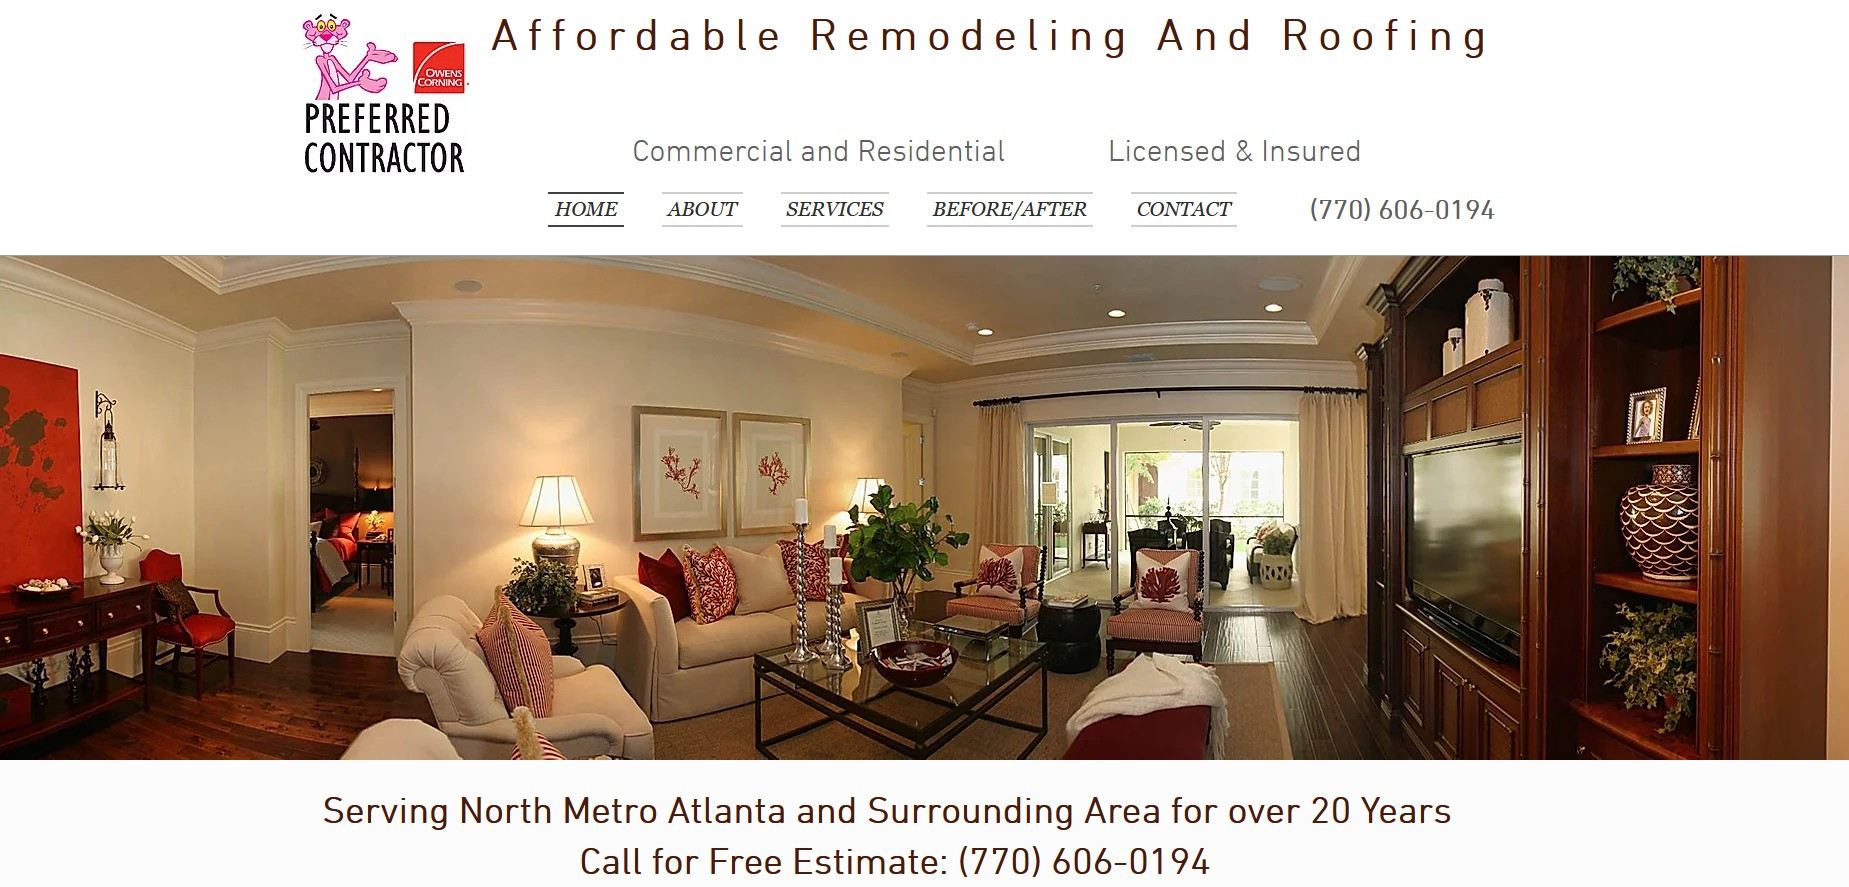 Affordable Remodeling and Roofing- Commercial and Residential Contractors